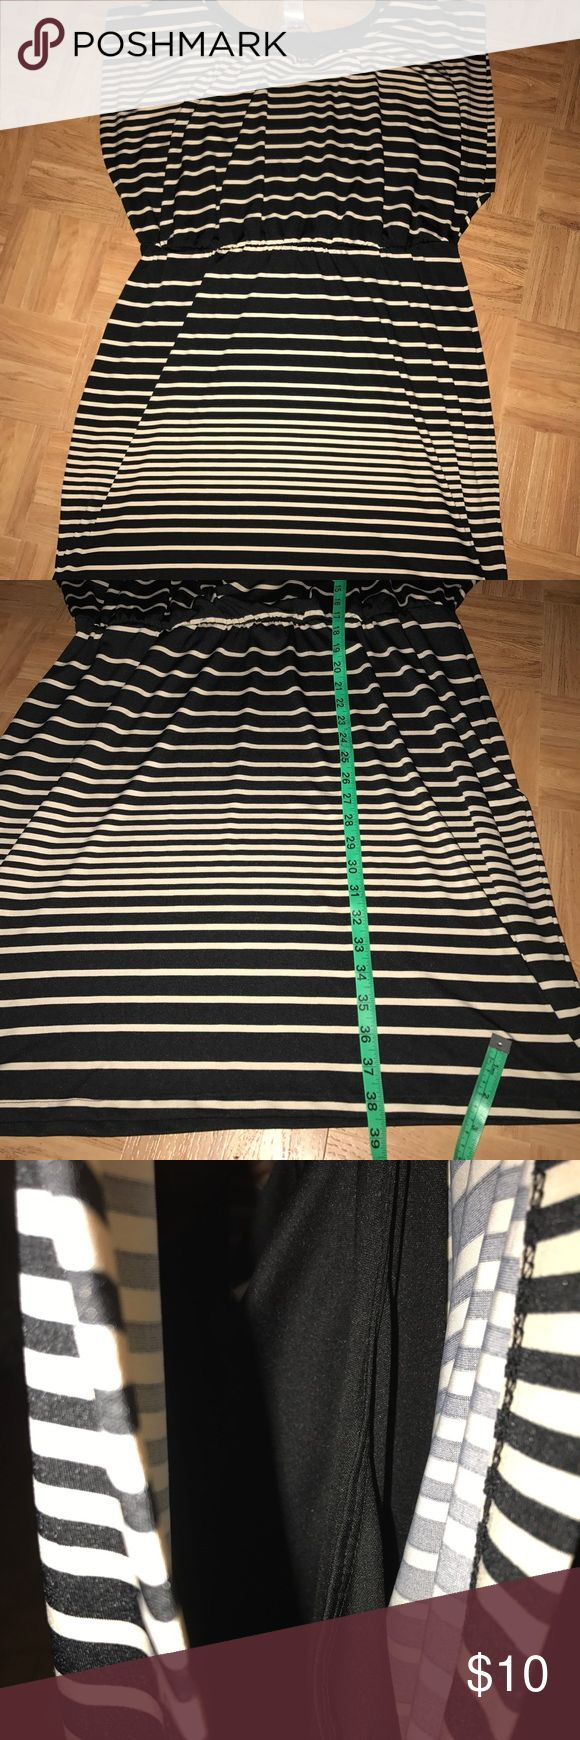 Striped plus size dress Mid length dress, elastic in waist. Came with a belt/sash but I can't find it. Fully stretched measurements in pictures, large arm holes with built it black tank. Size 2x cream/black JFW Dresses Midi